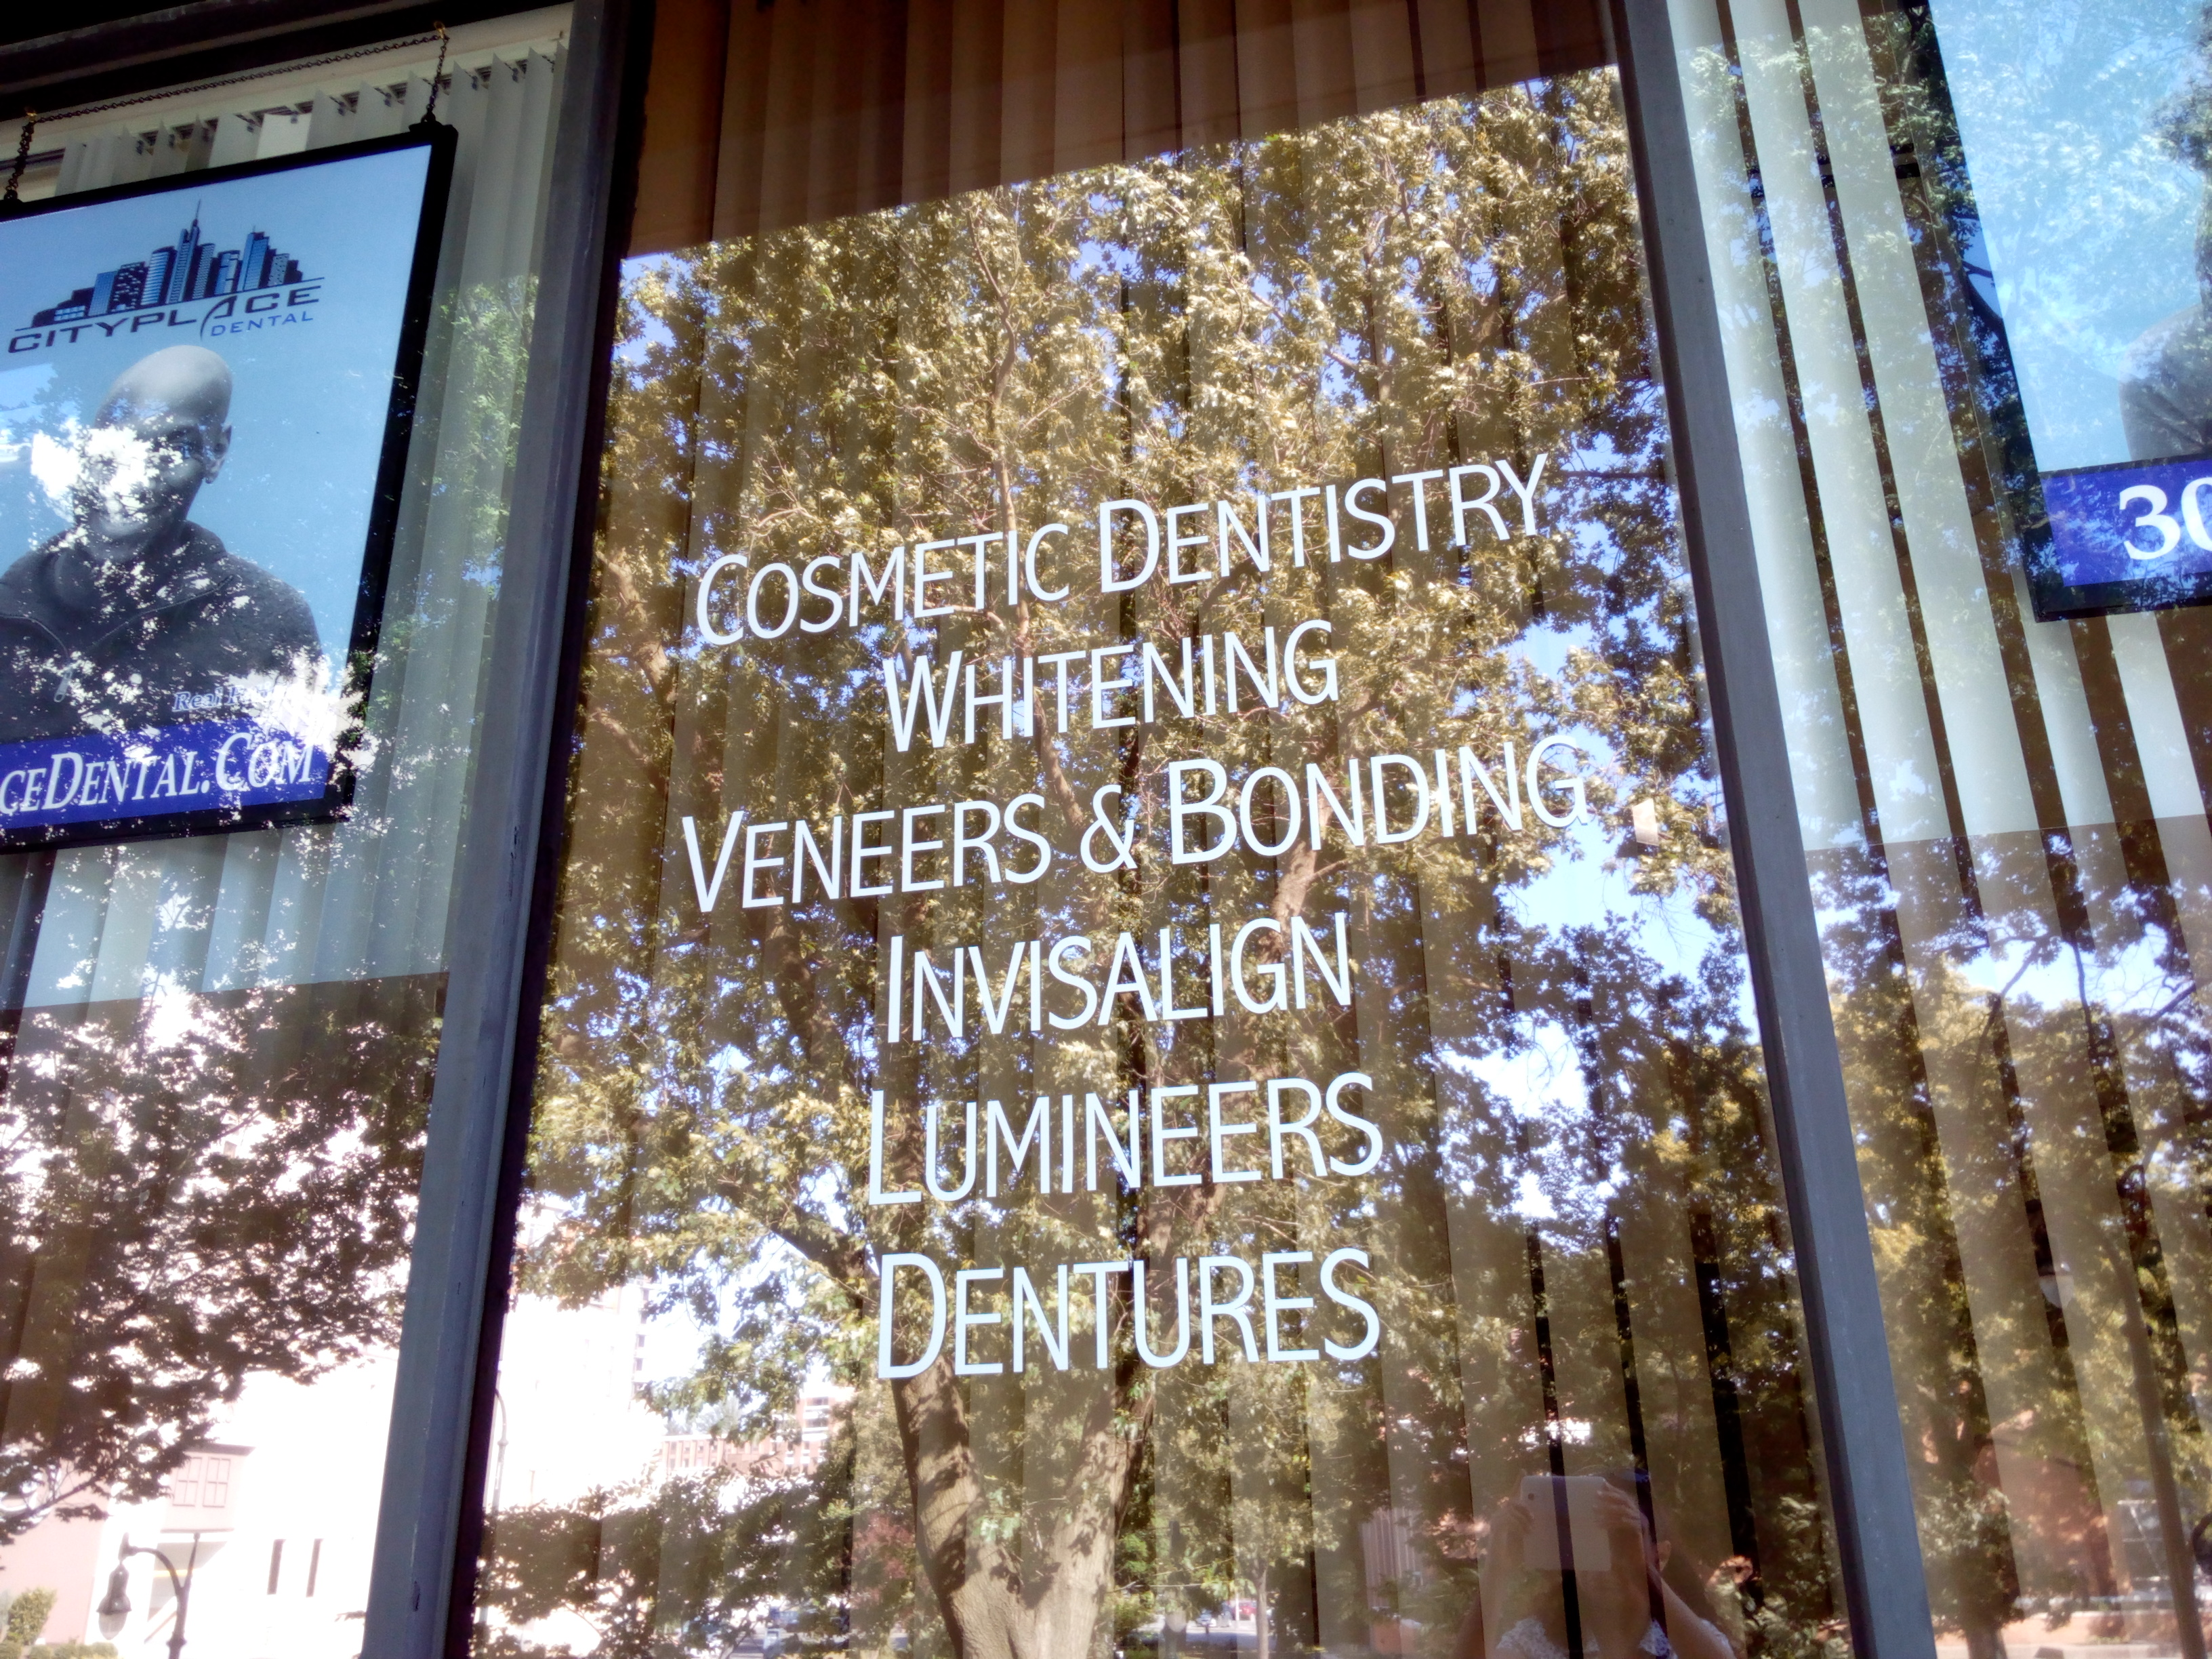 City Place Dental Procedures - Exterior dental office window with names of dental procedures.